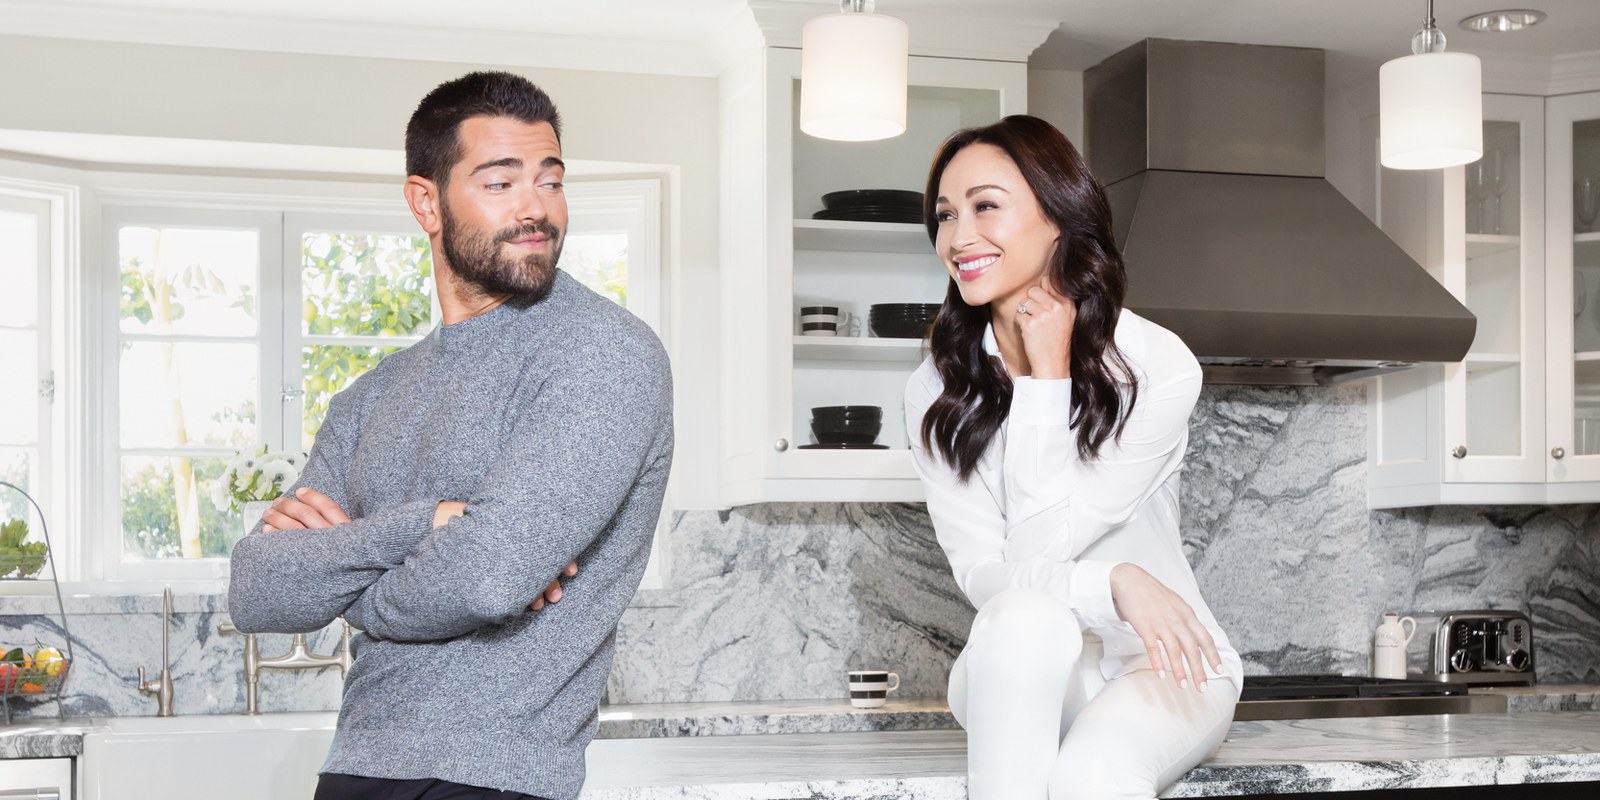 Tour Jesse Metcalfe and Cara Santana's Los Angeles Home!